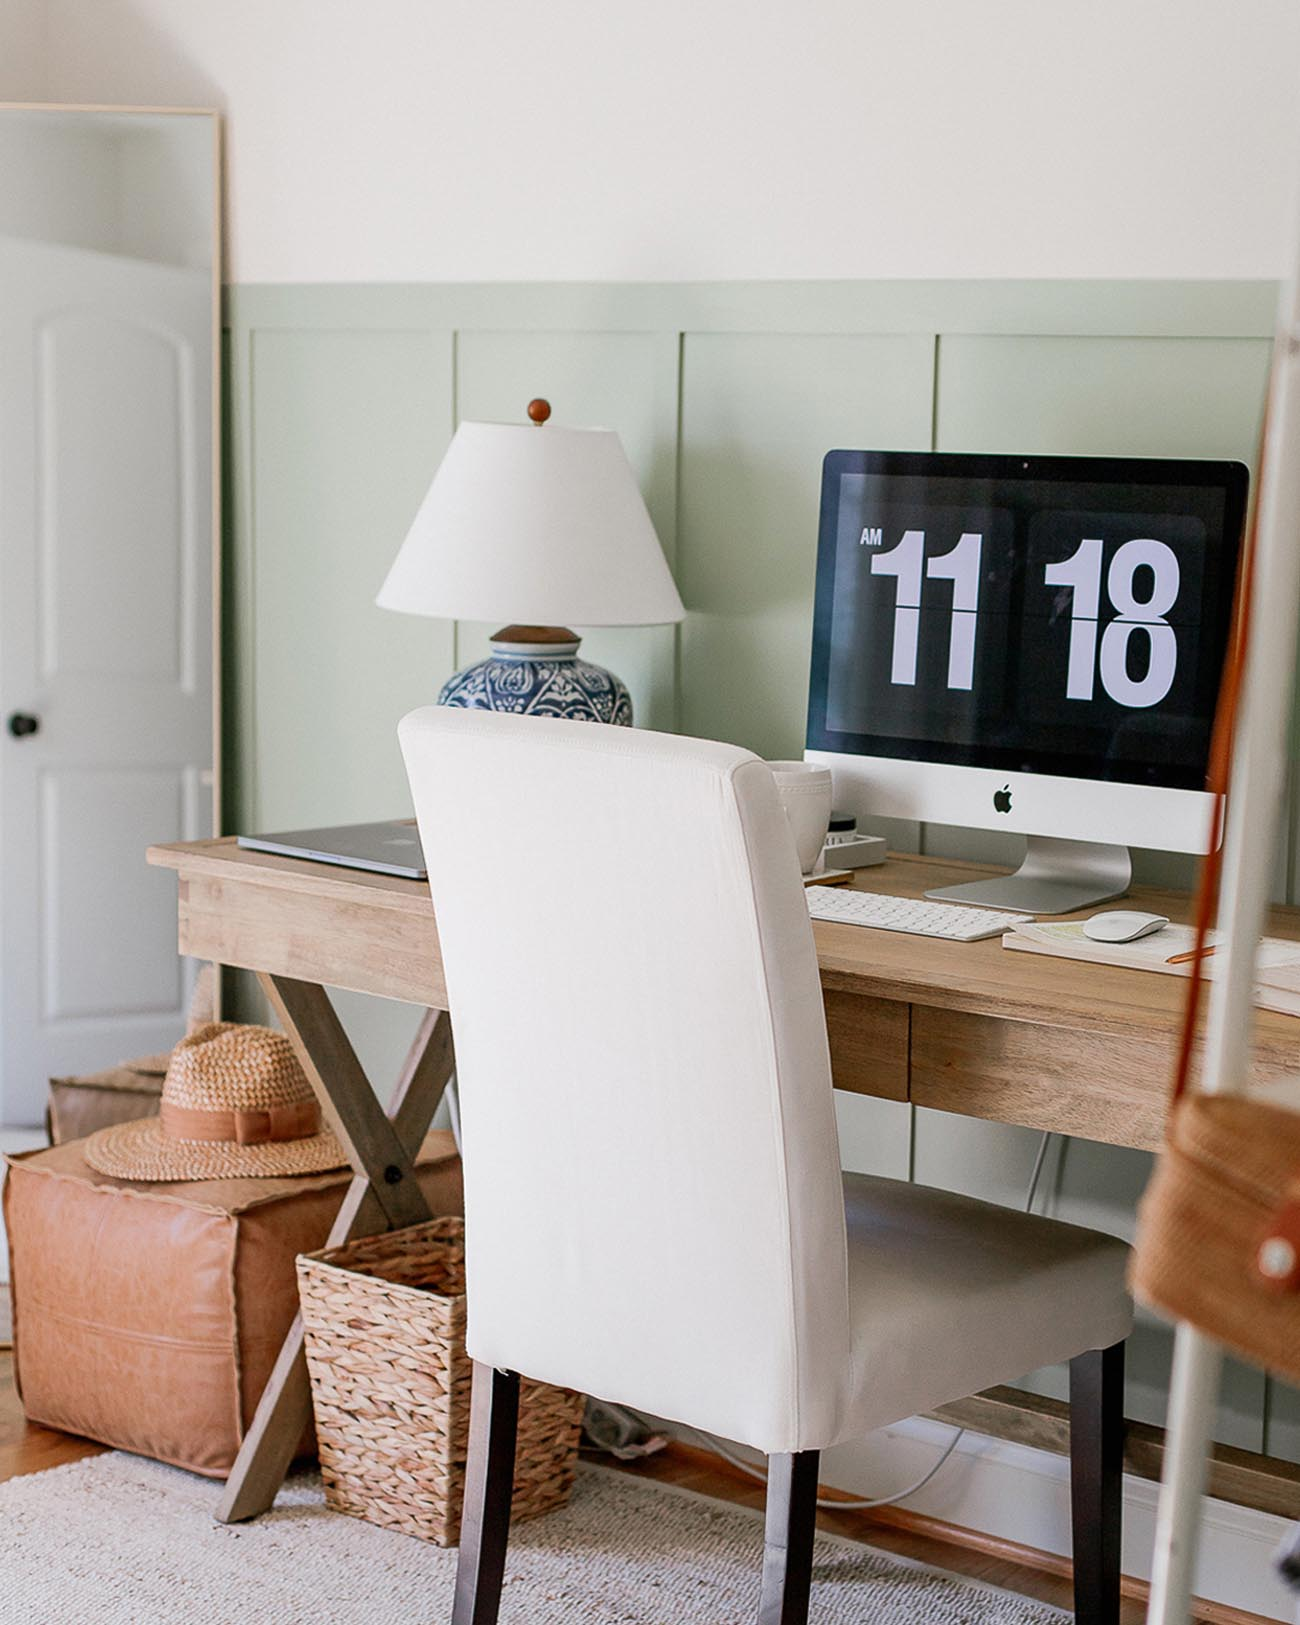 If you're fortunate to be able to work from home, why not create a beautiful home office. Here are our favorite home offices from Instagram to get you inspired!